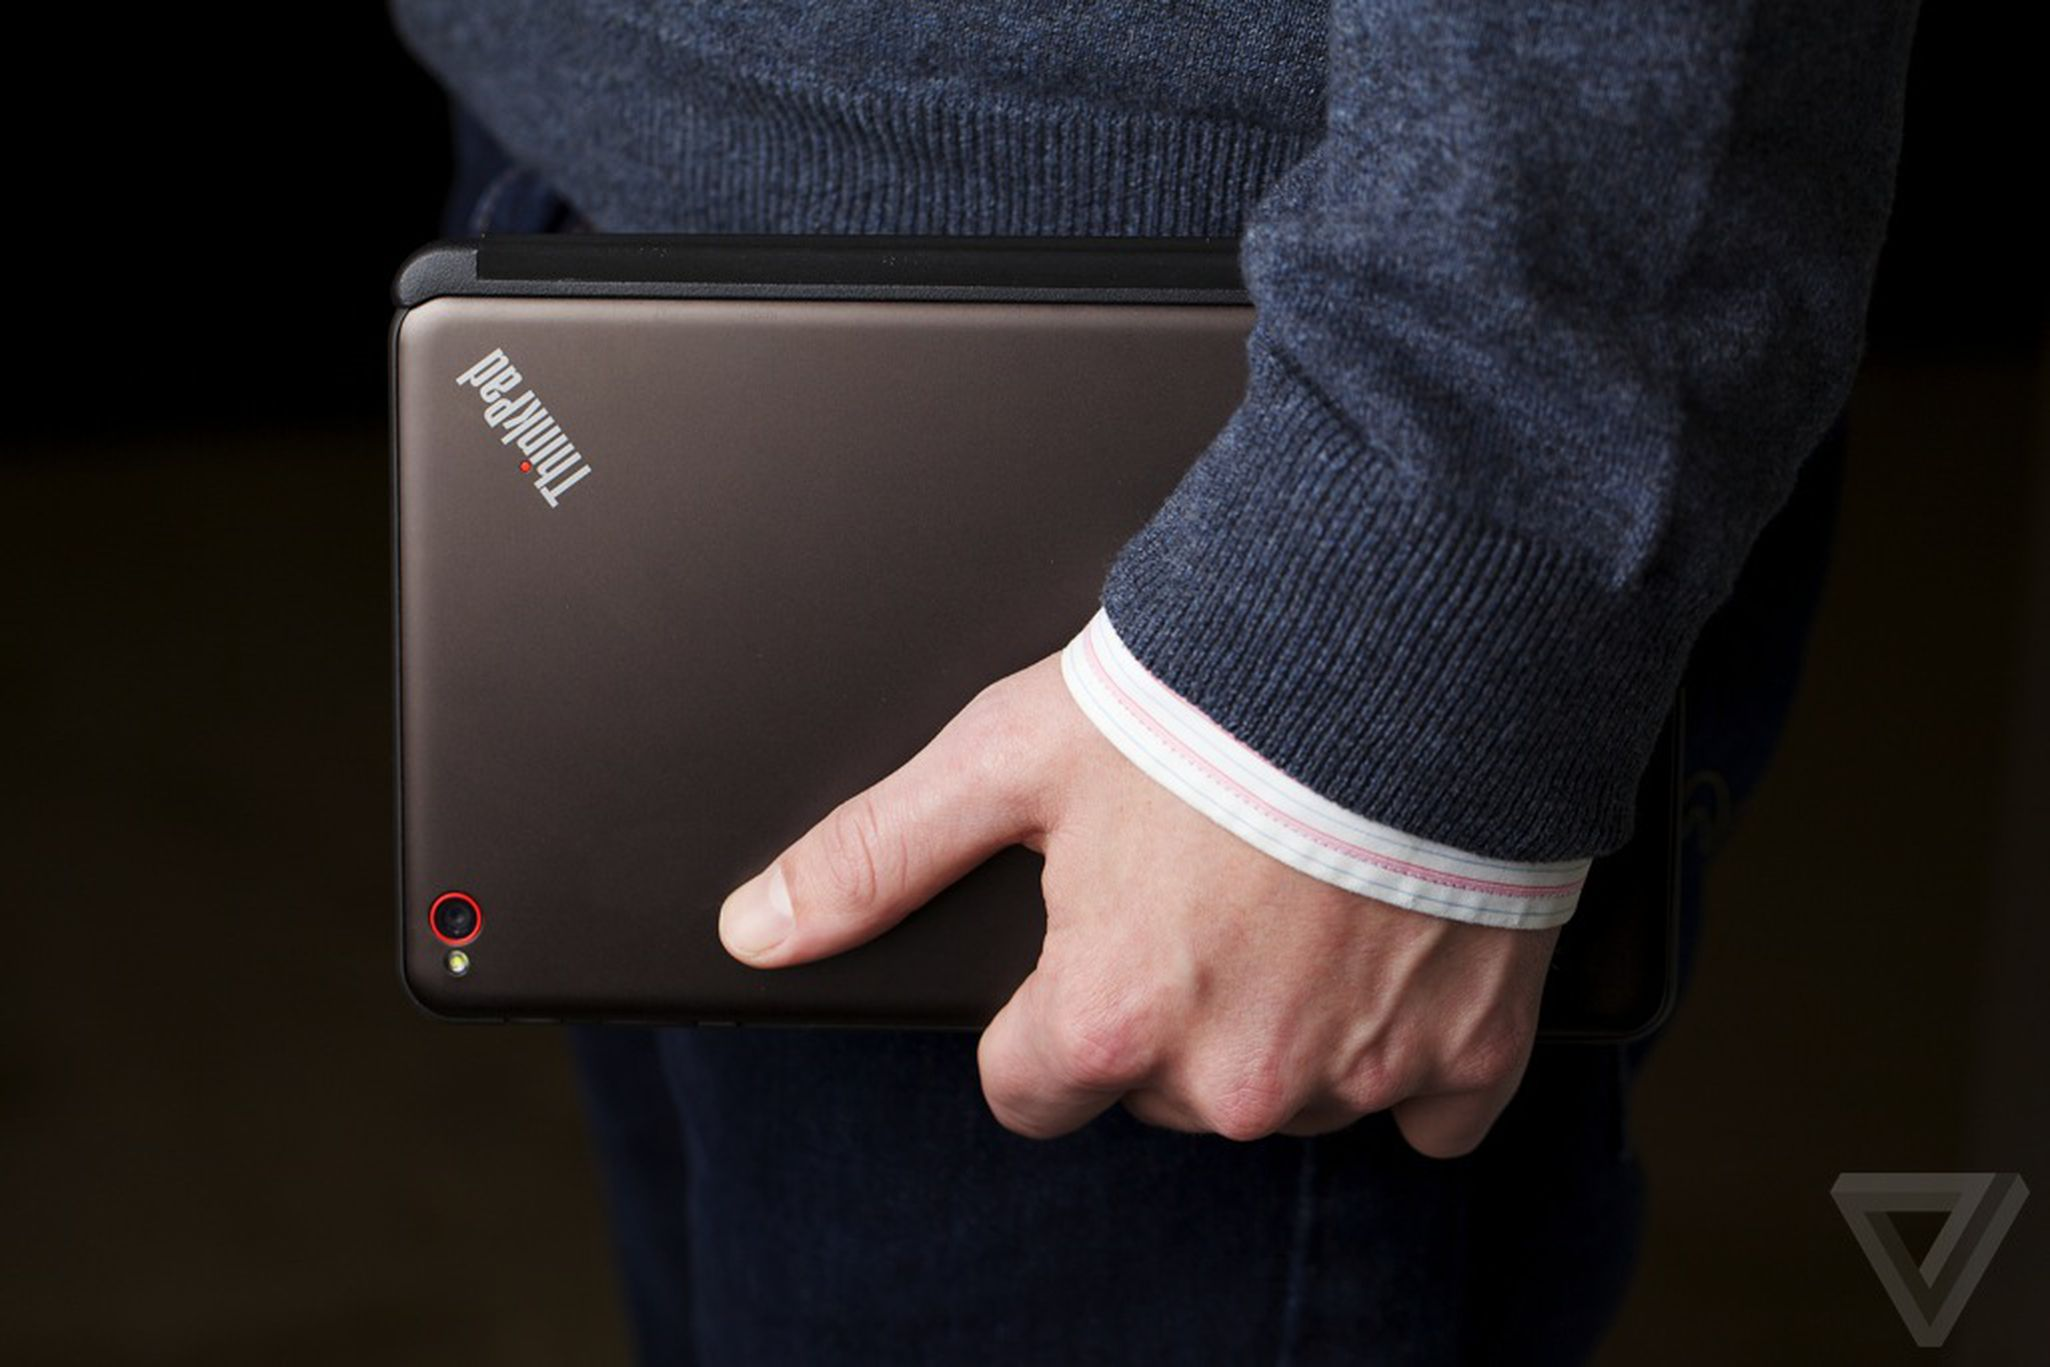 laptops with windows 8.1 installed